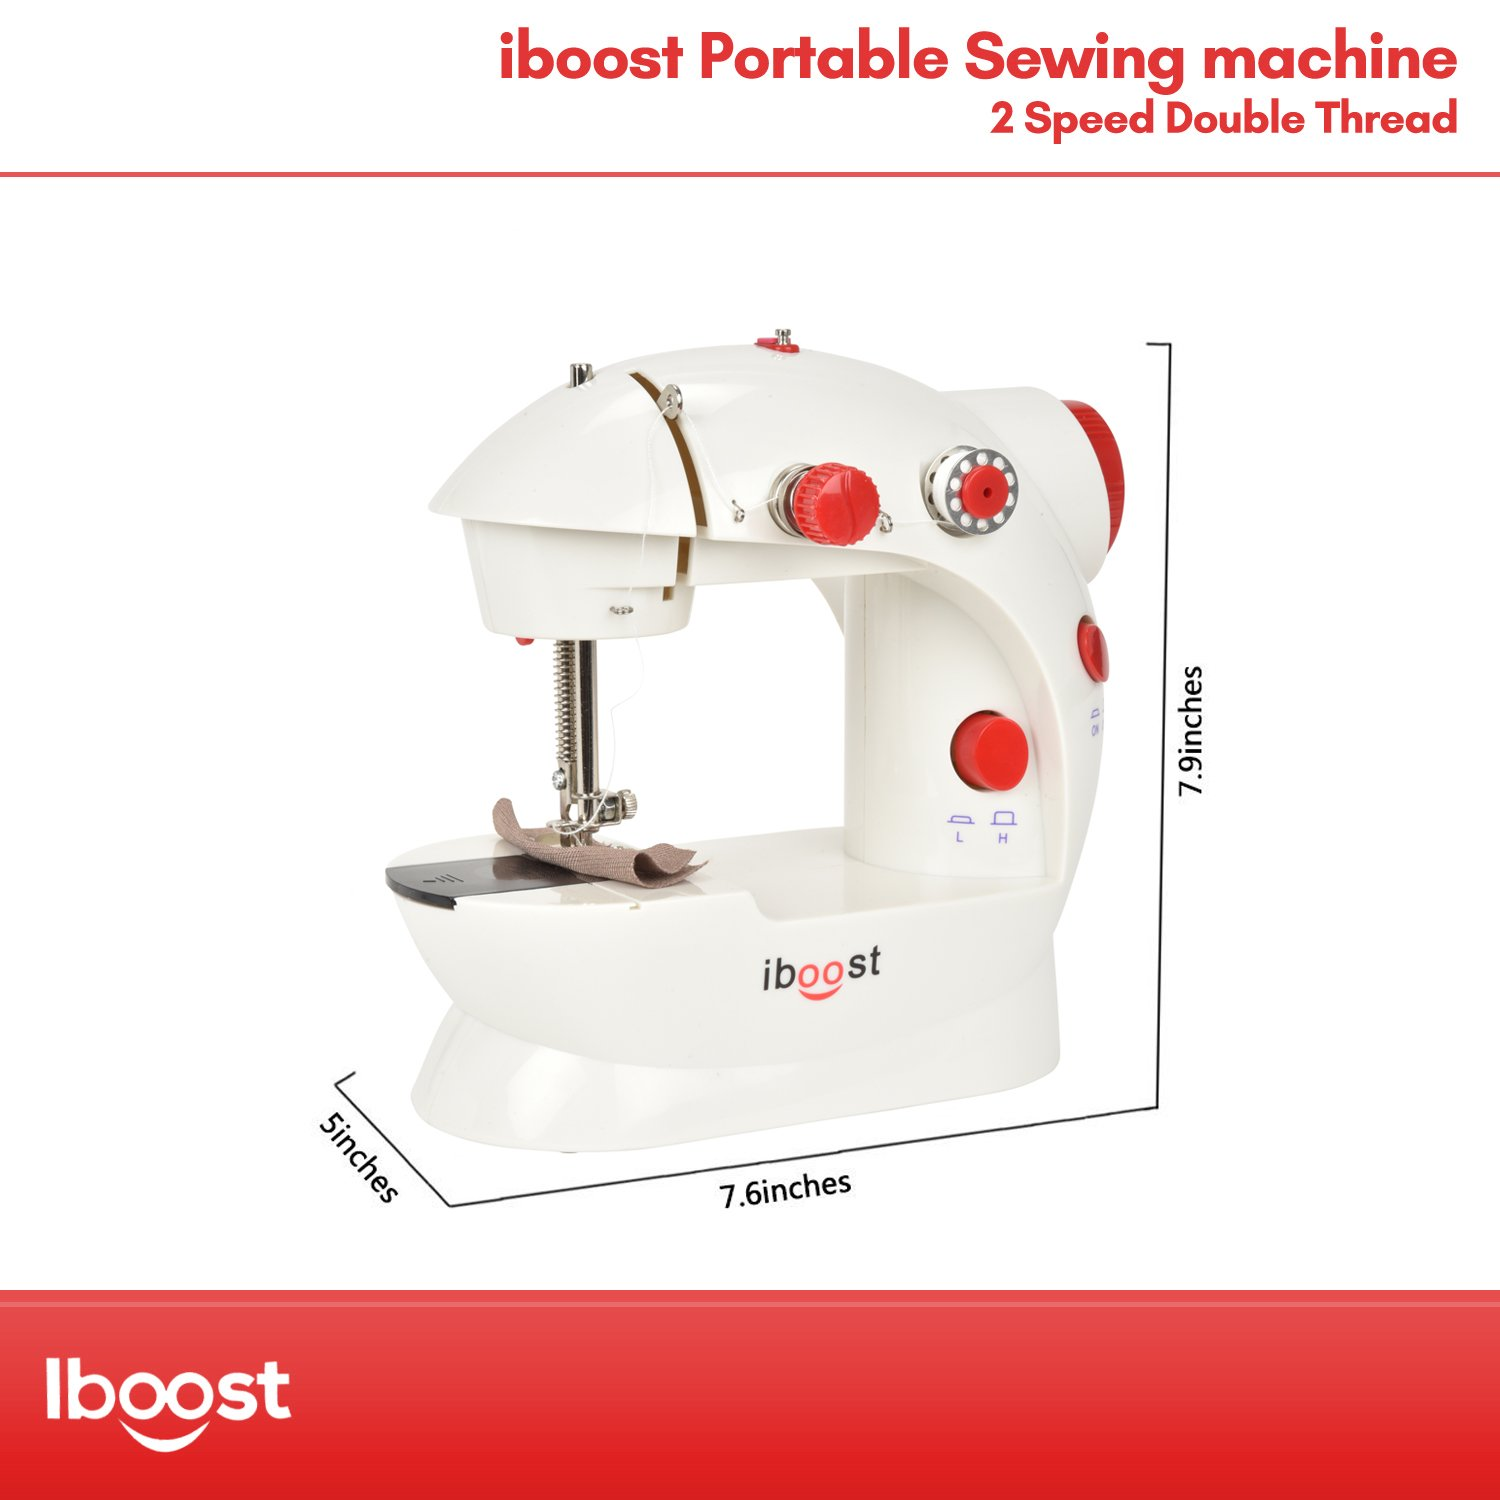 2-Speed and Foot Pedal Cutter iBoost Portable Sewing Machine Double-Thread